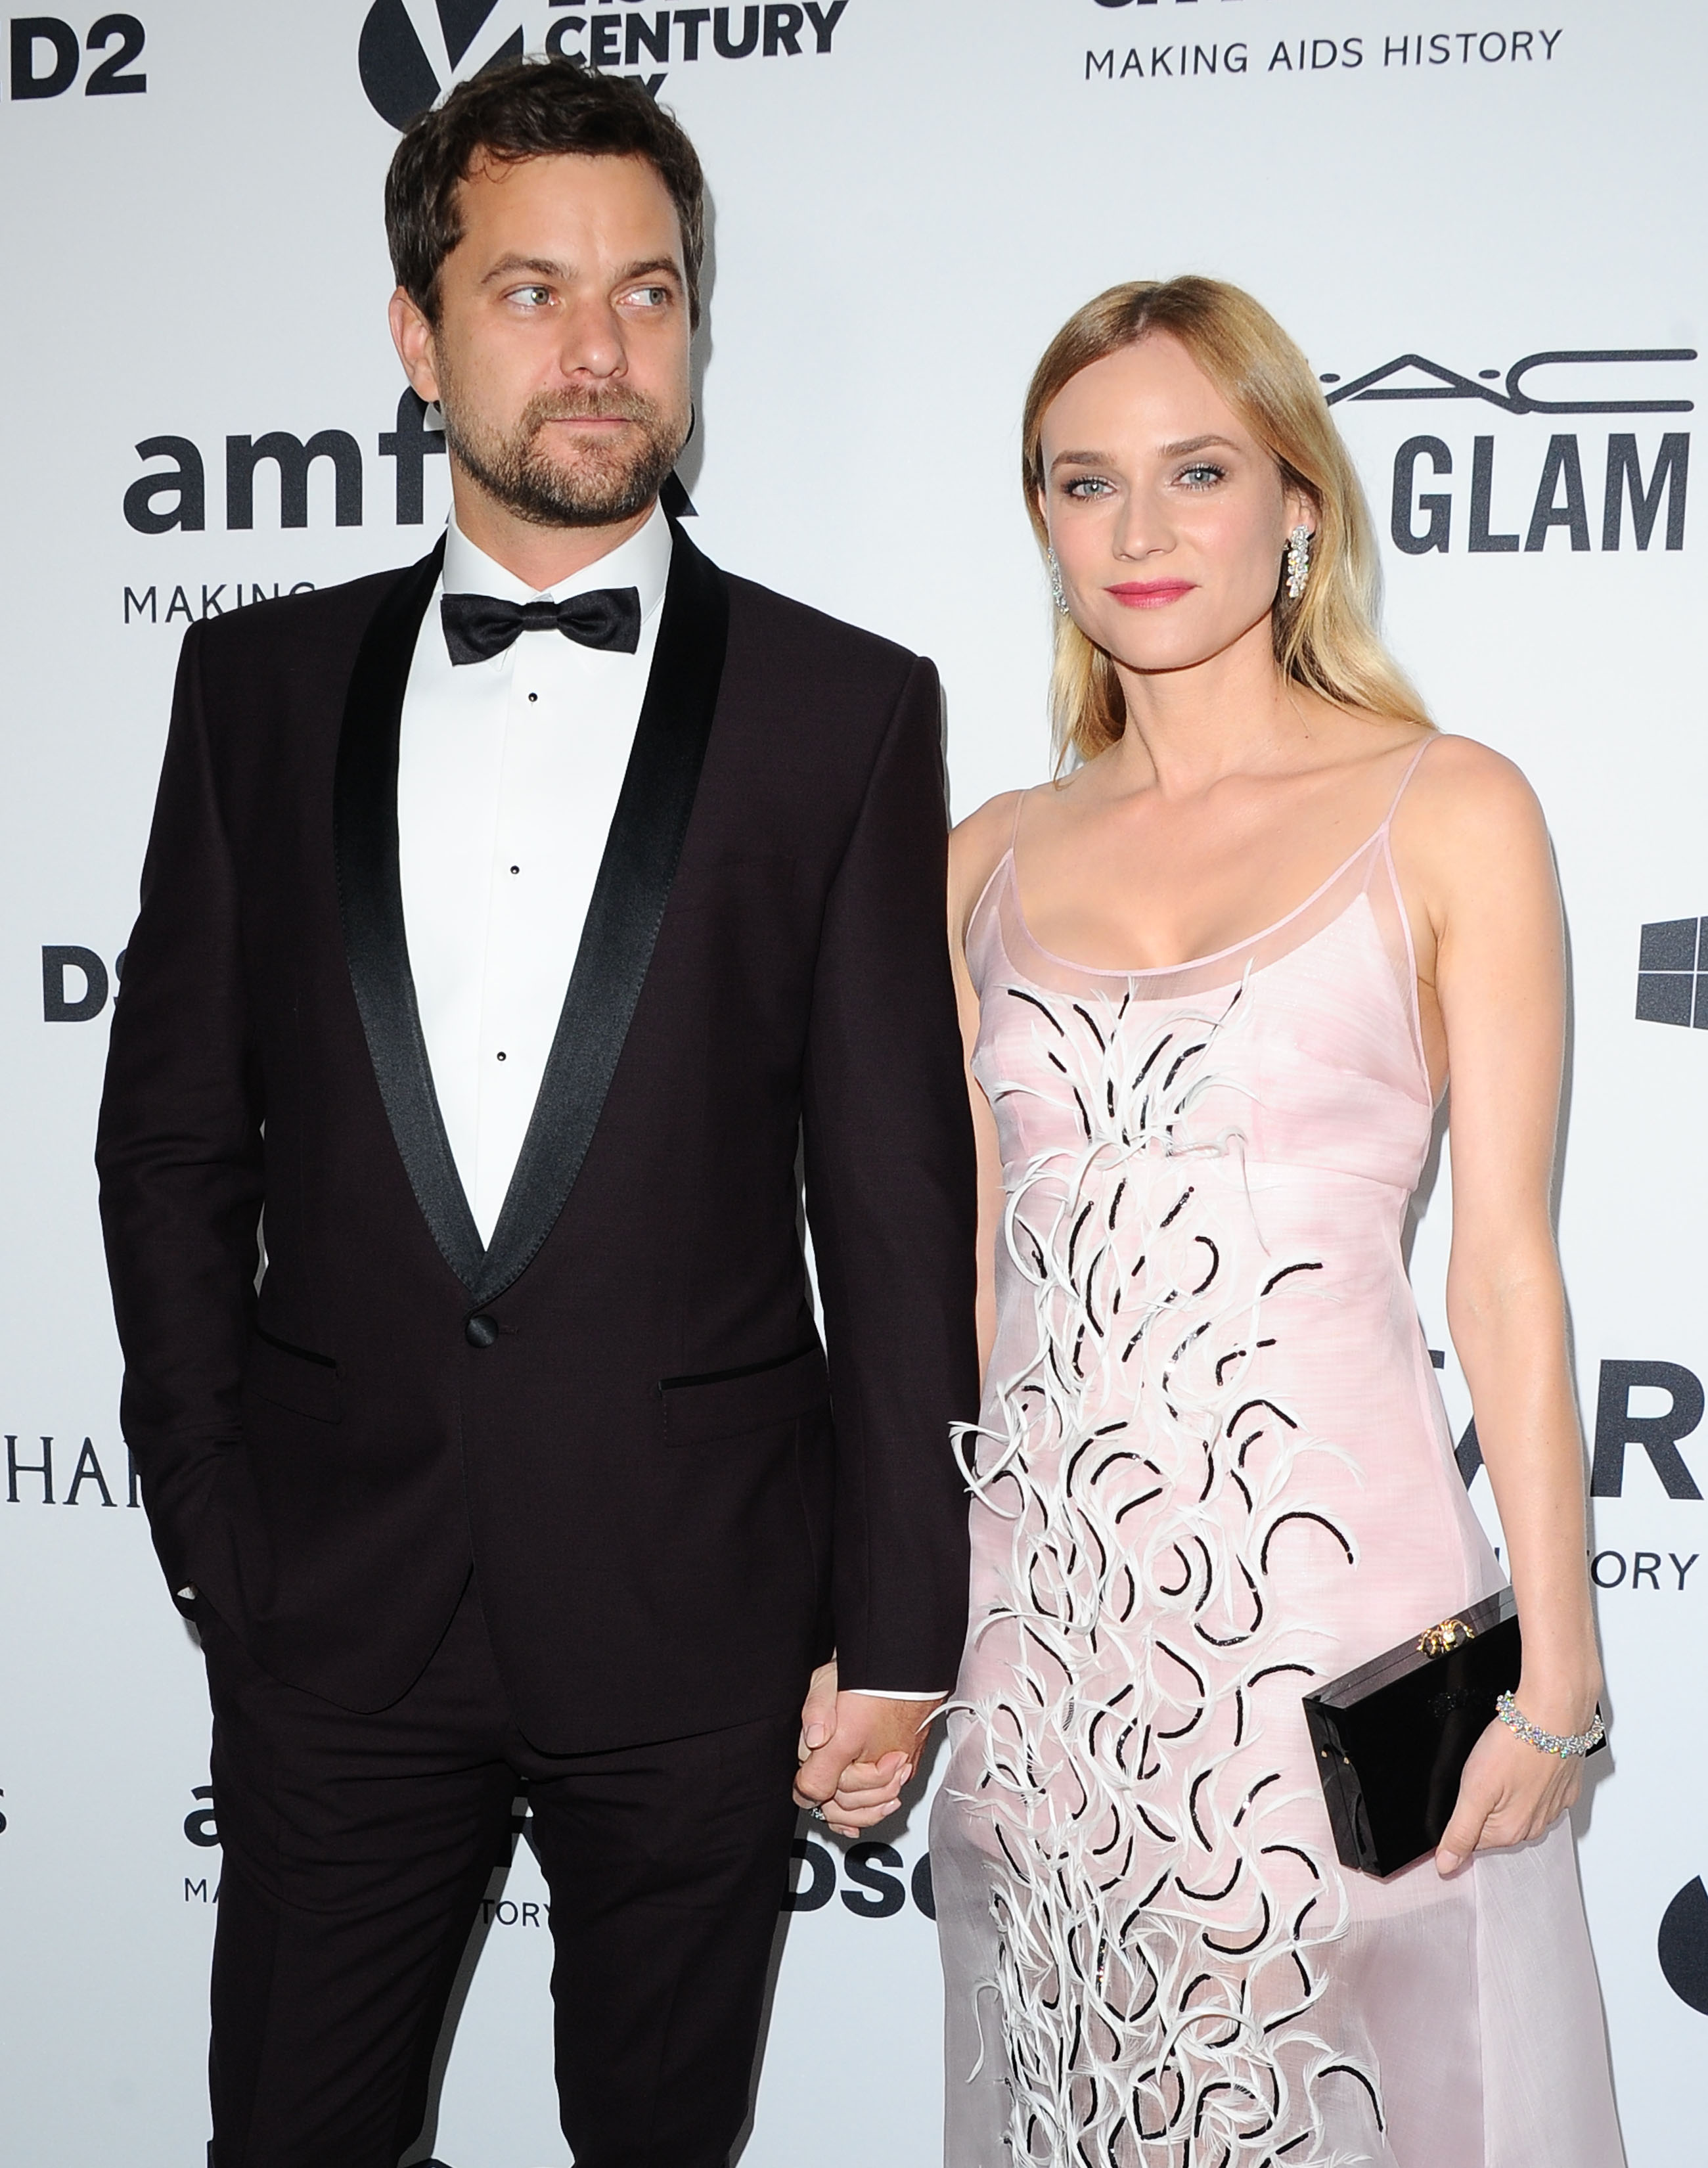 joshua jackson et diane kruger best of 2016 les ruptures les plus marquantes de l ann e elle. Black Bedroom Furniture Sets. Home Design Ideas